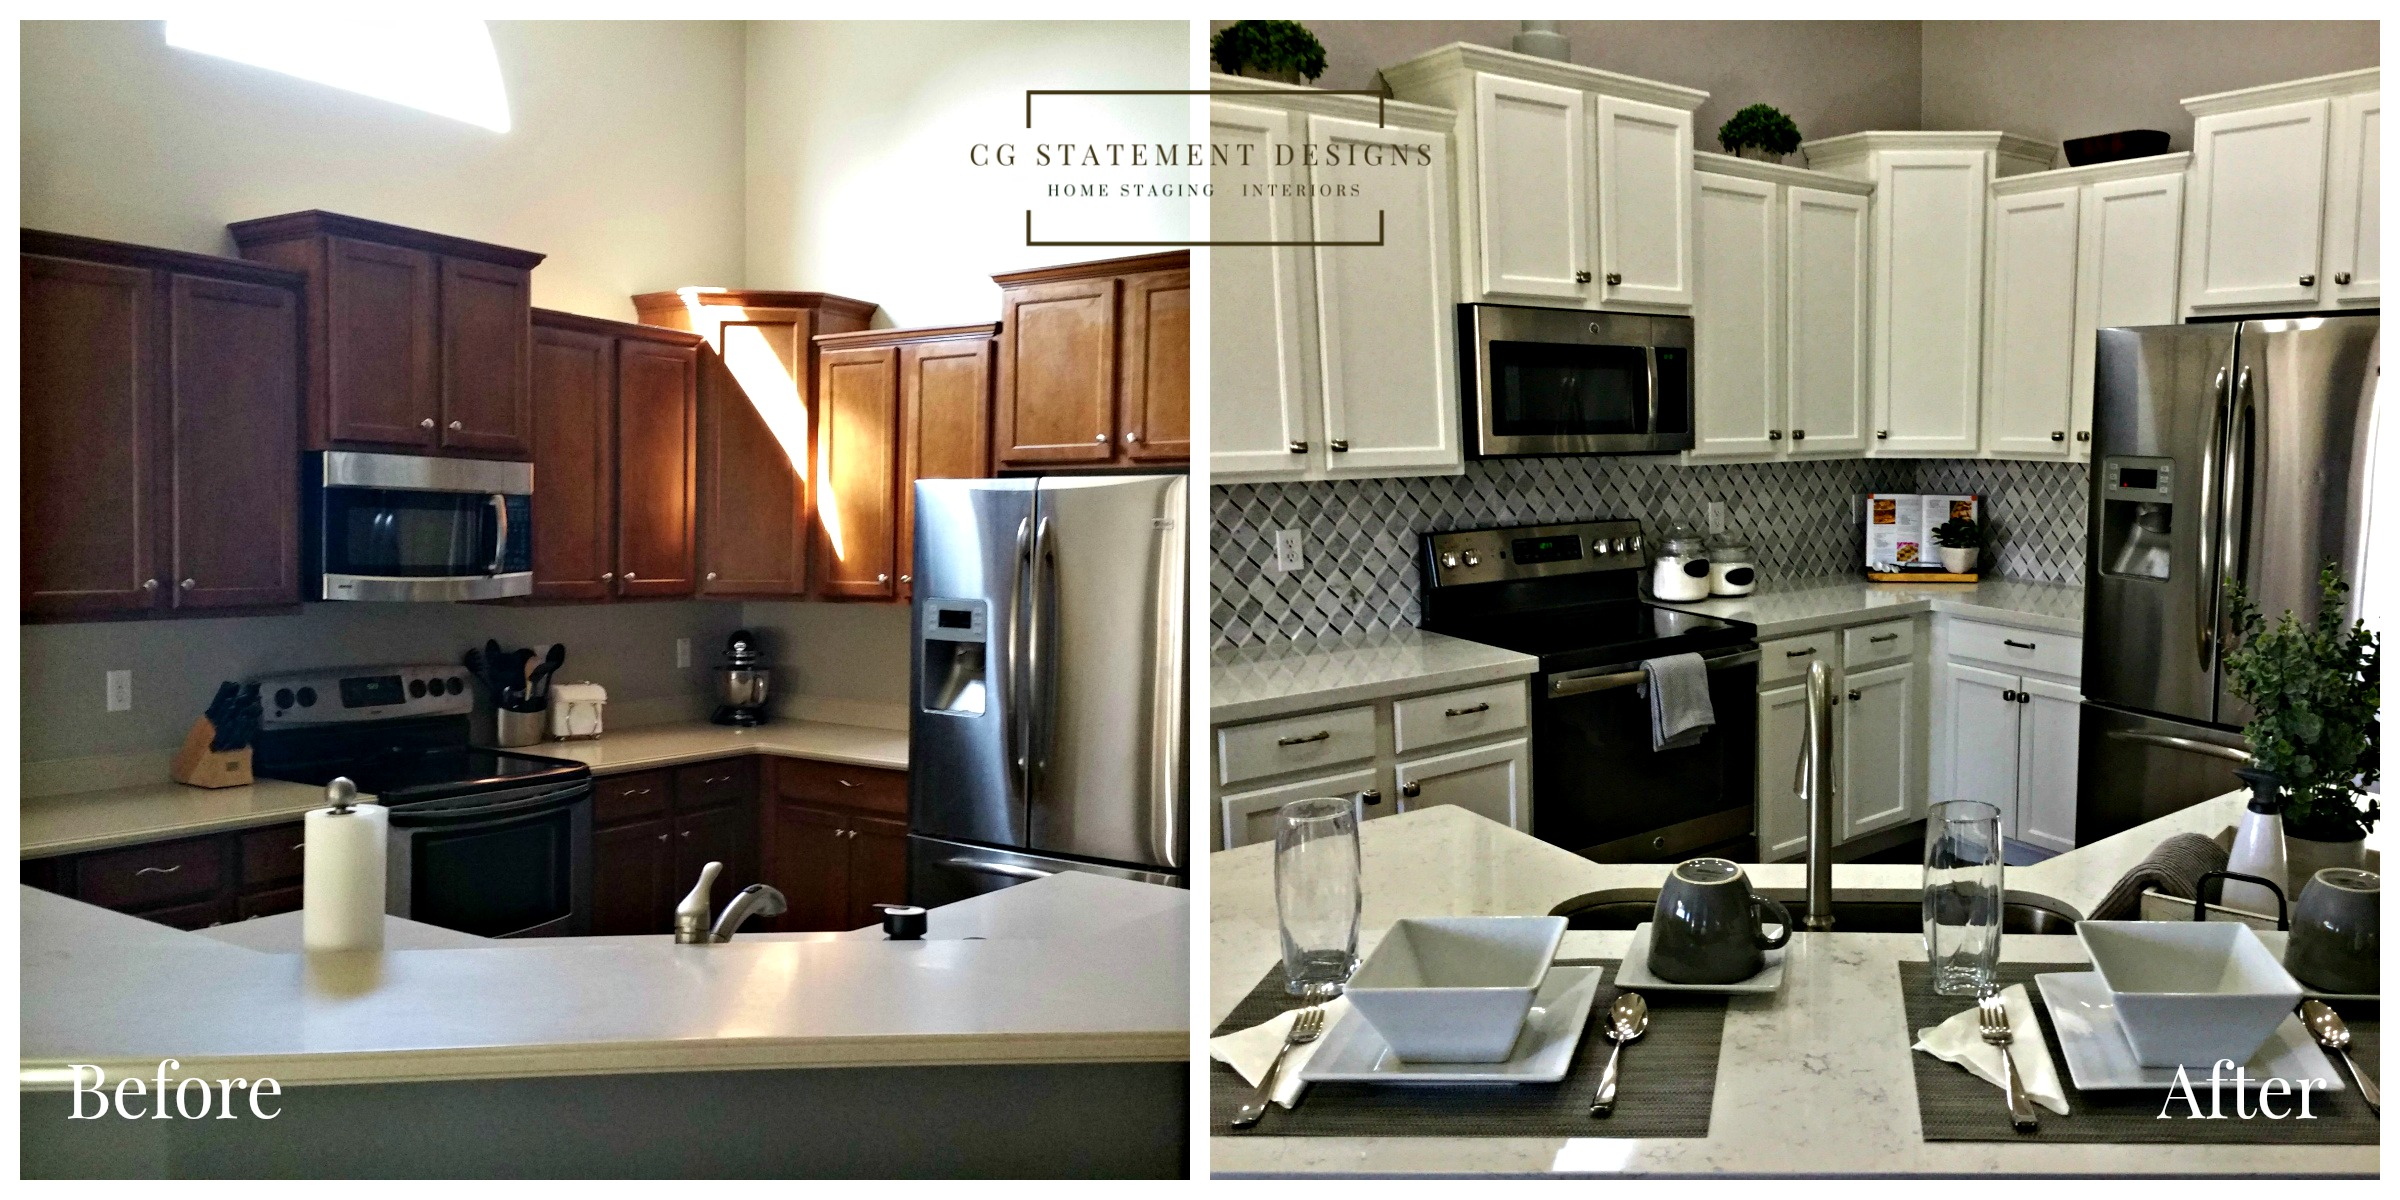 home staging redesign kitchen before after